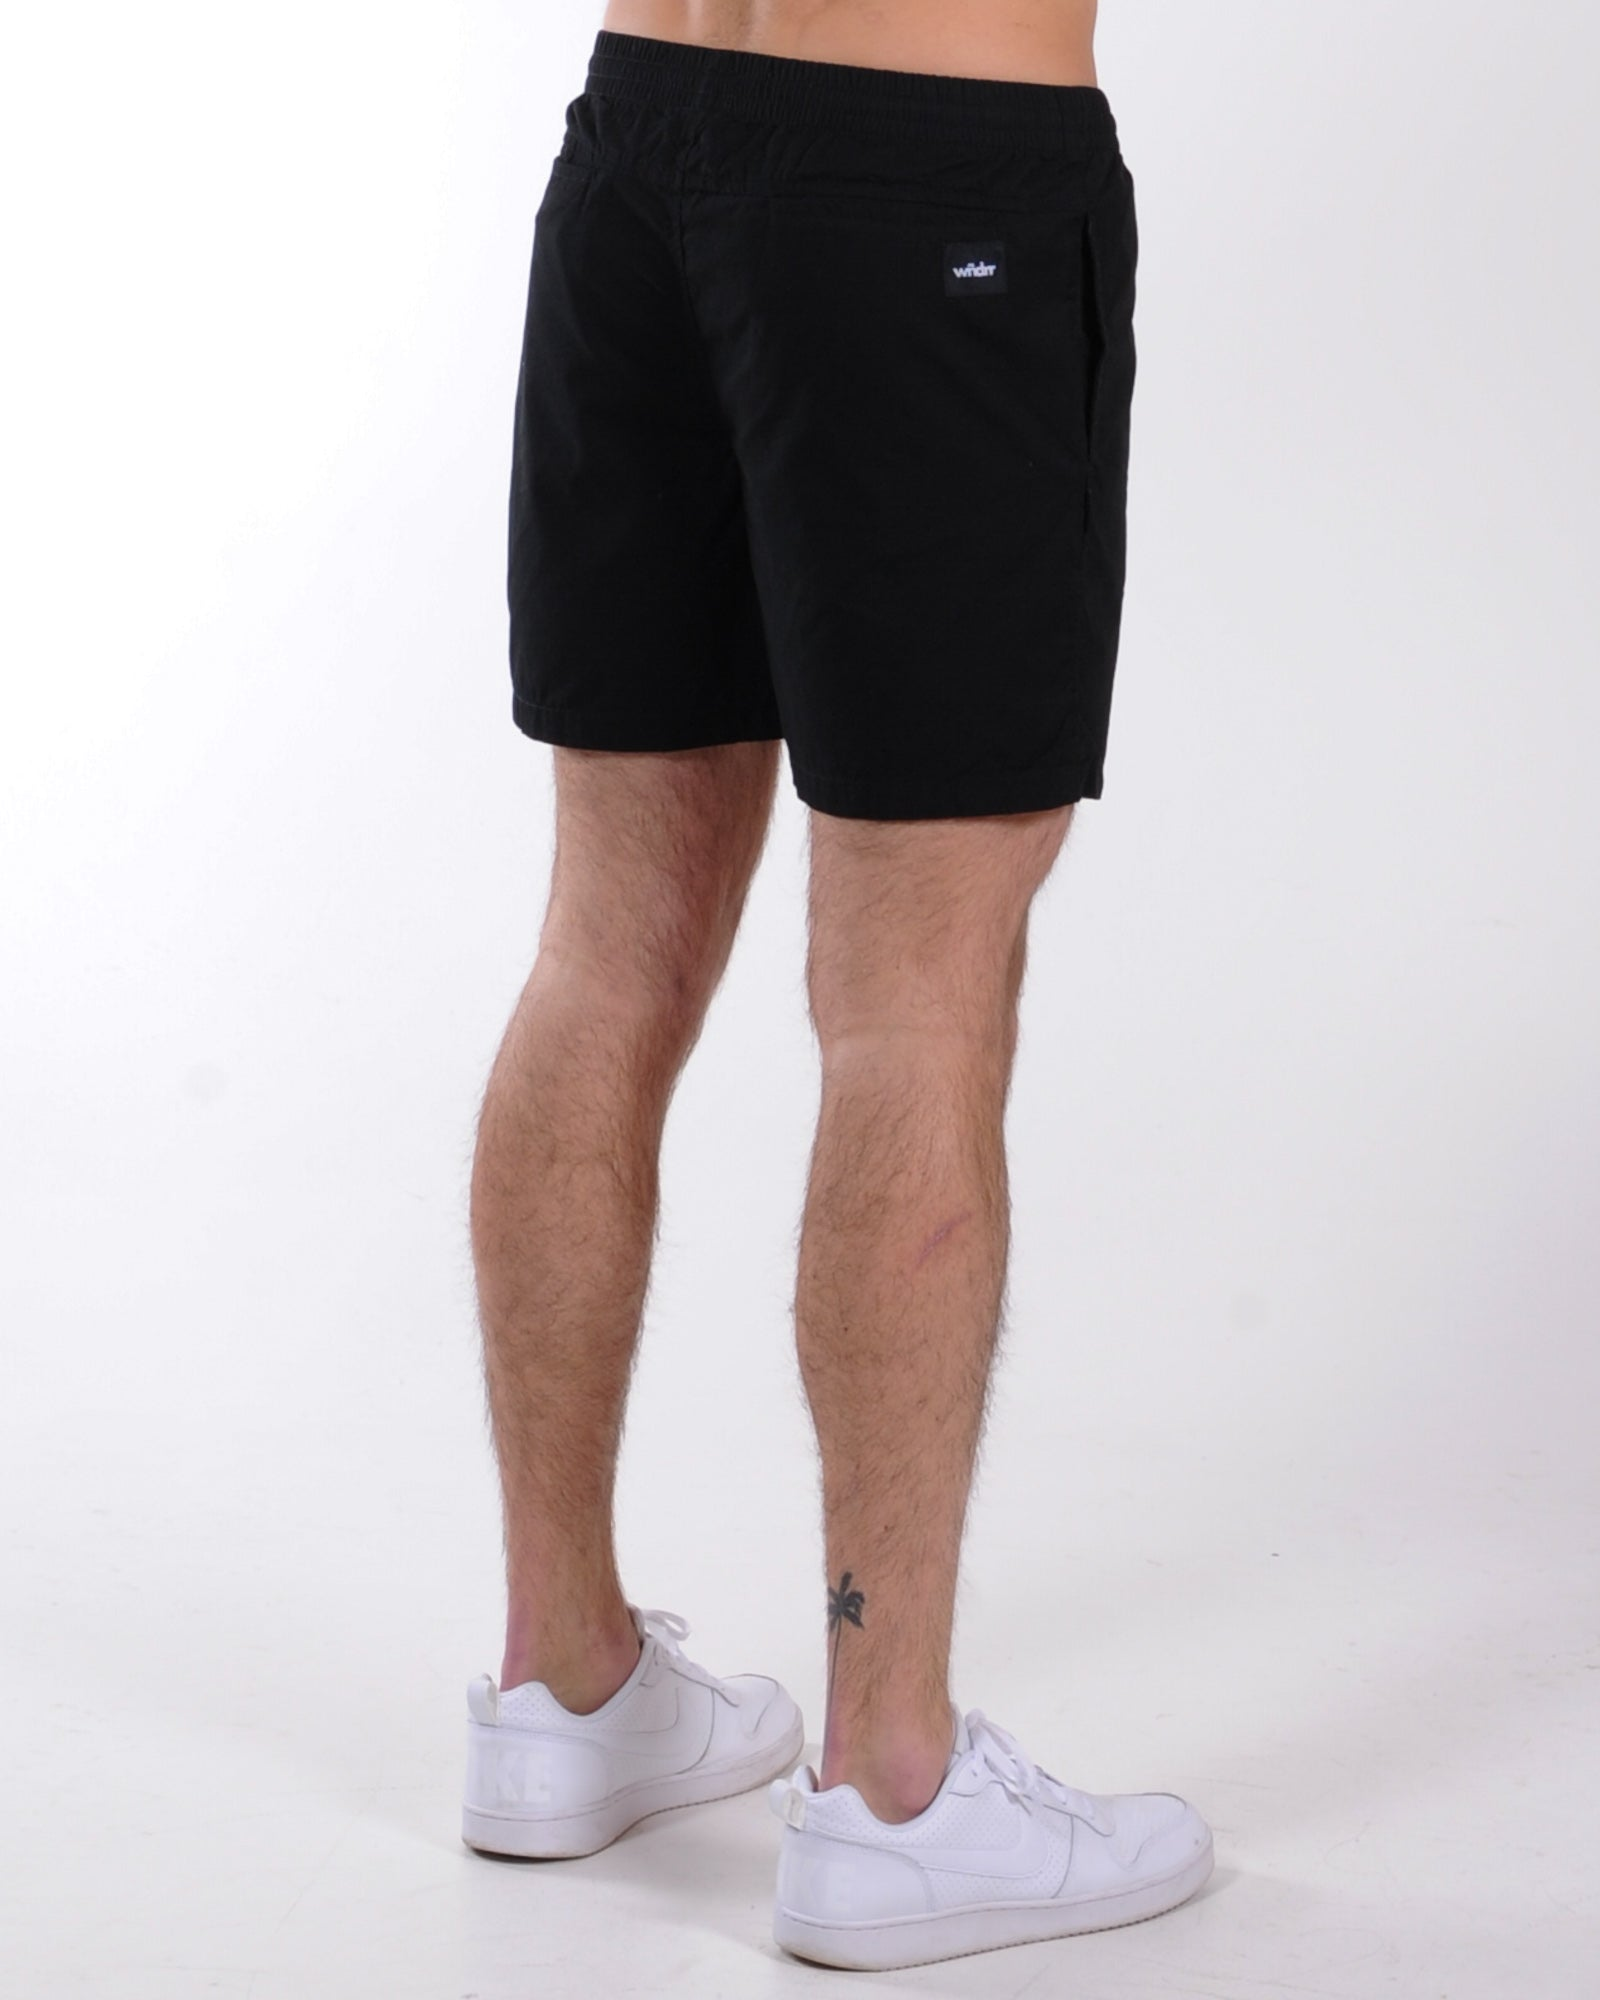 Wndrr Leader Beach Short - Black